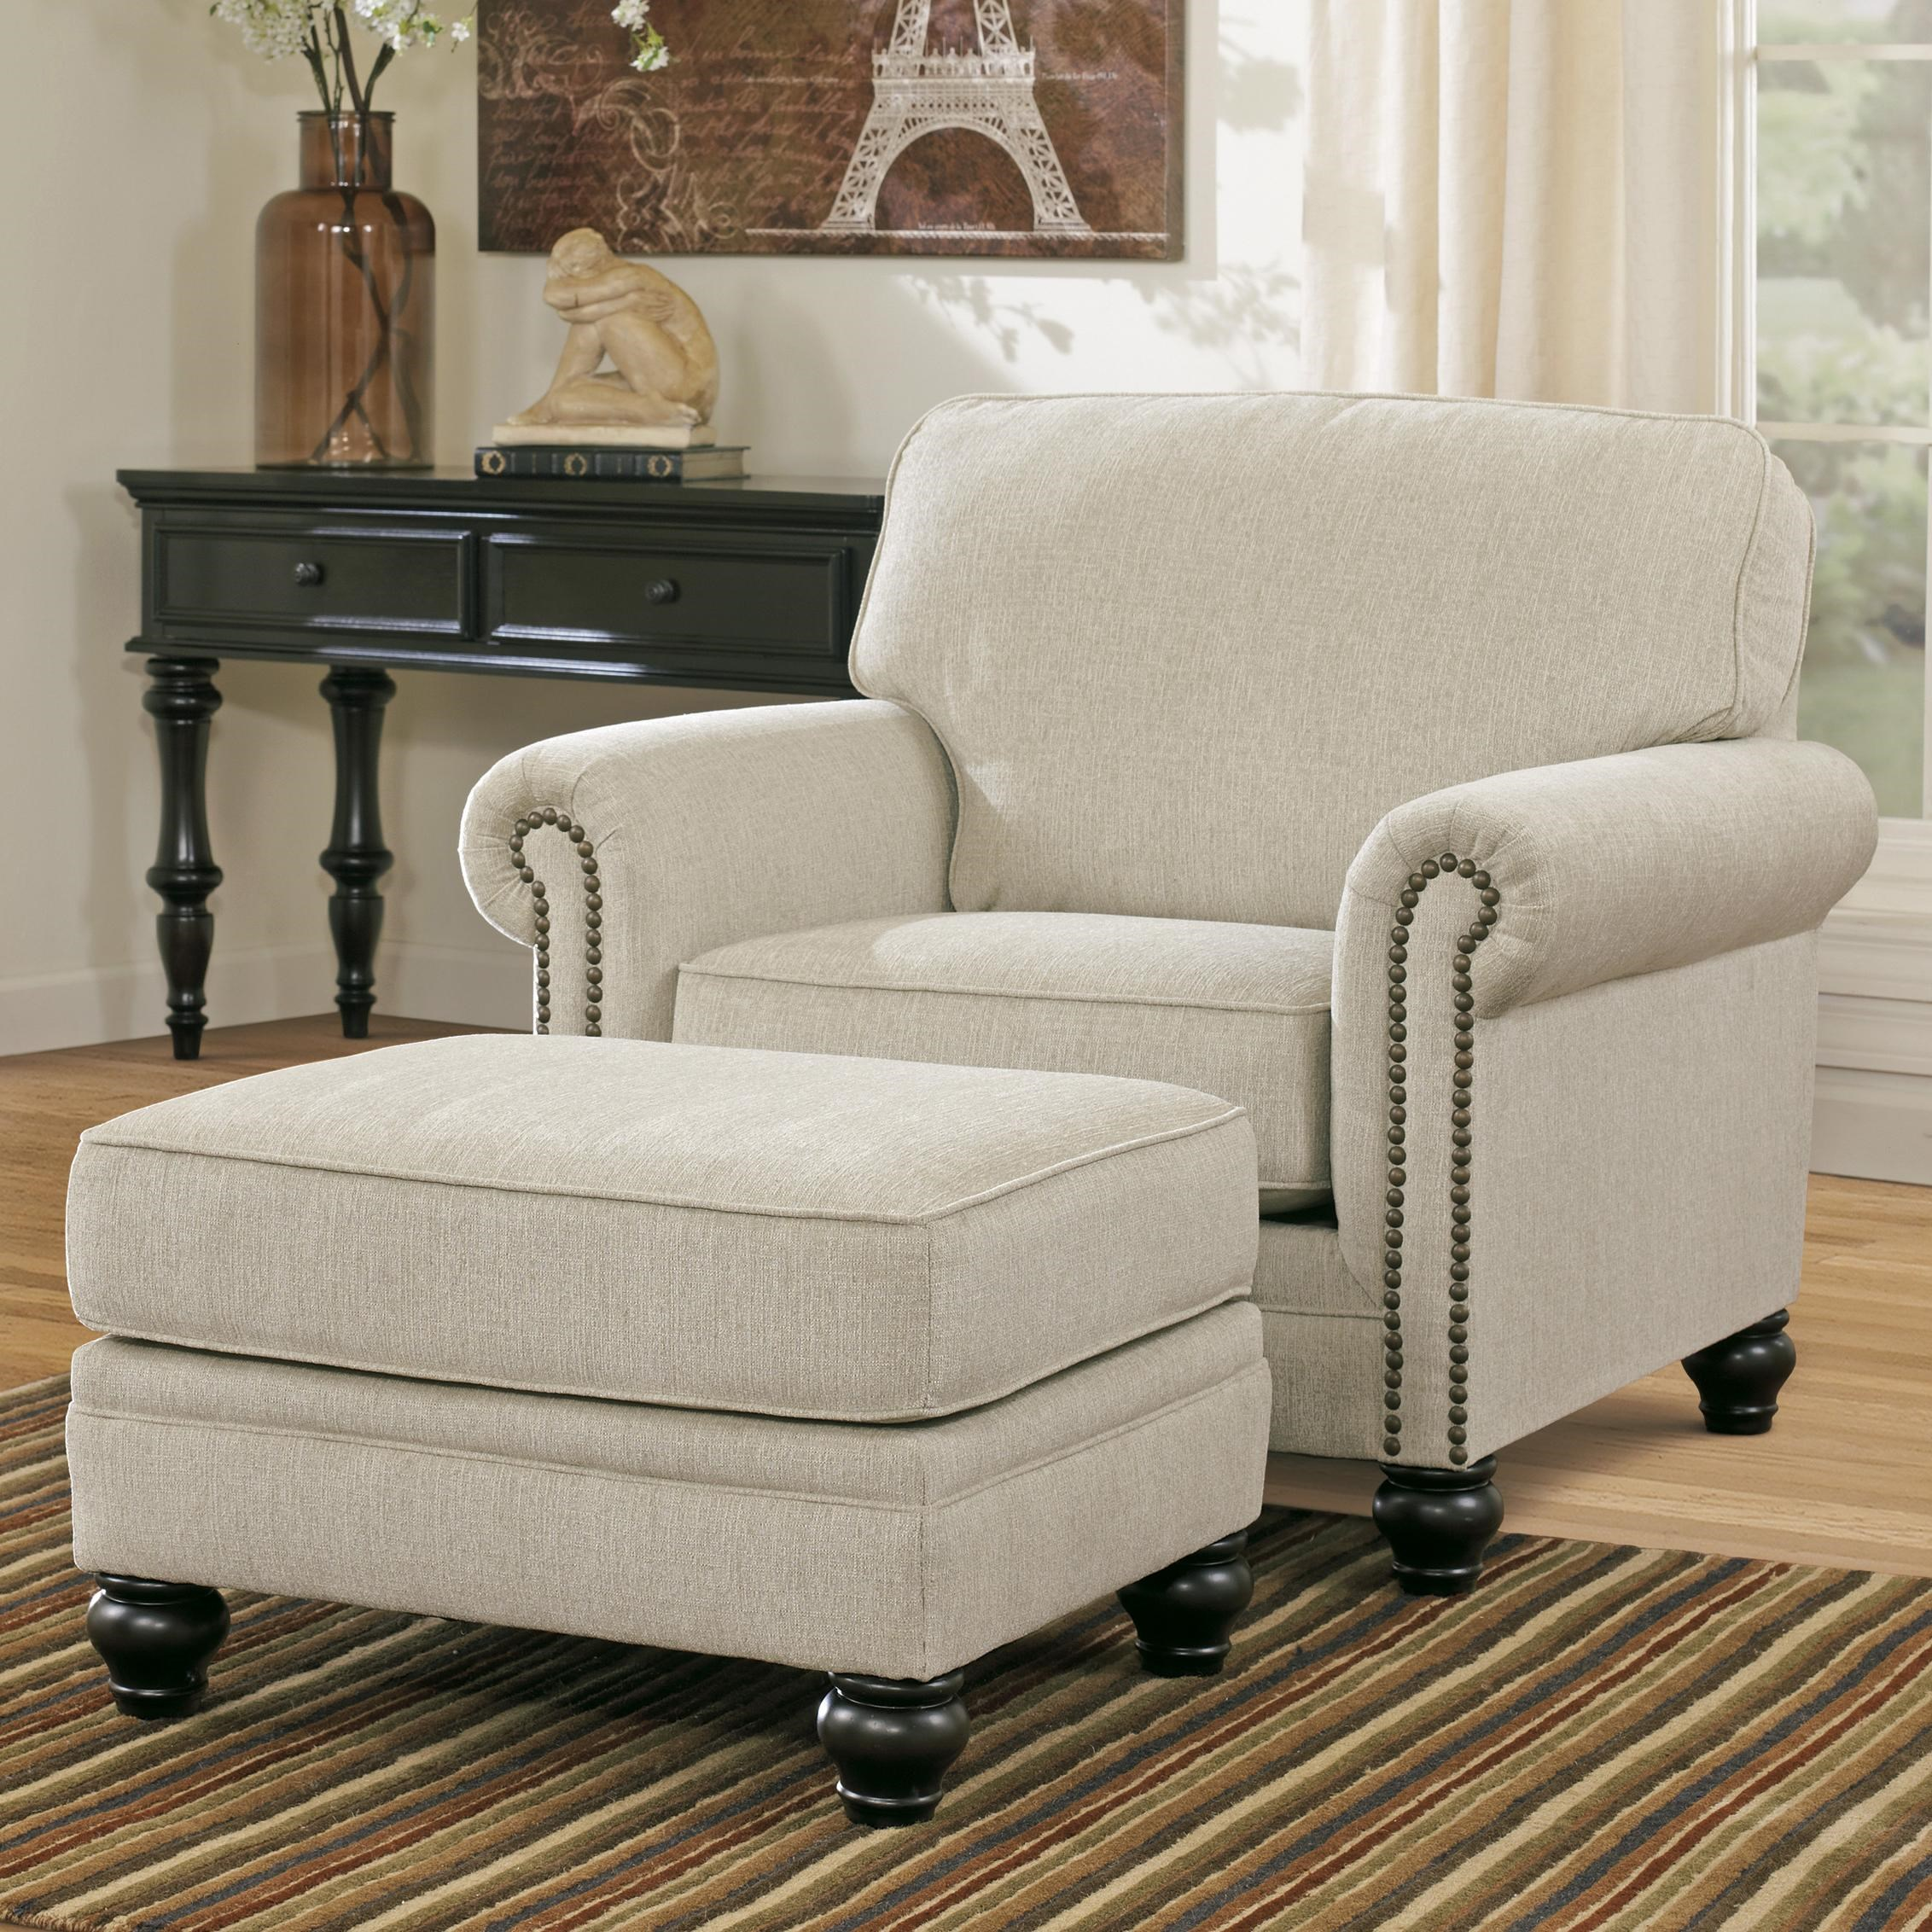 Transitional Chair with Rolled Arms & Ottoman